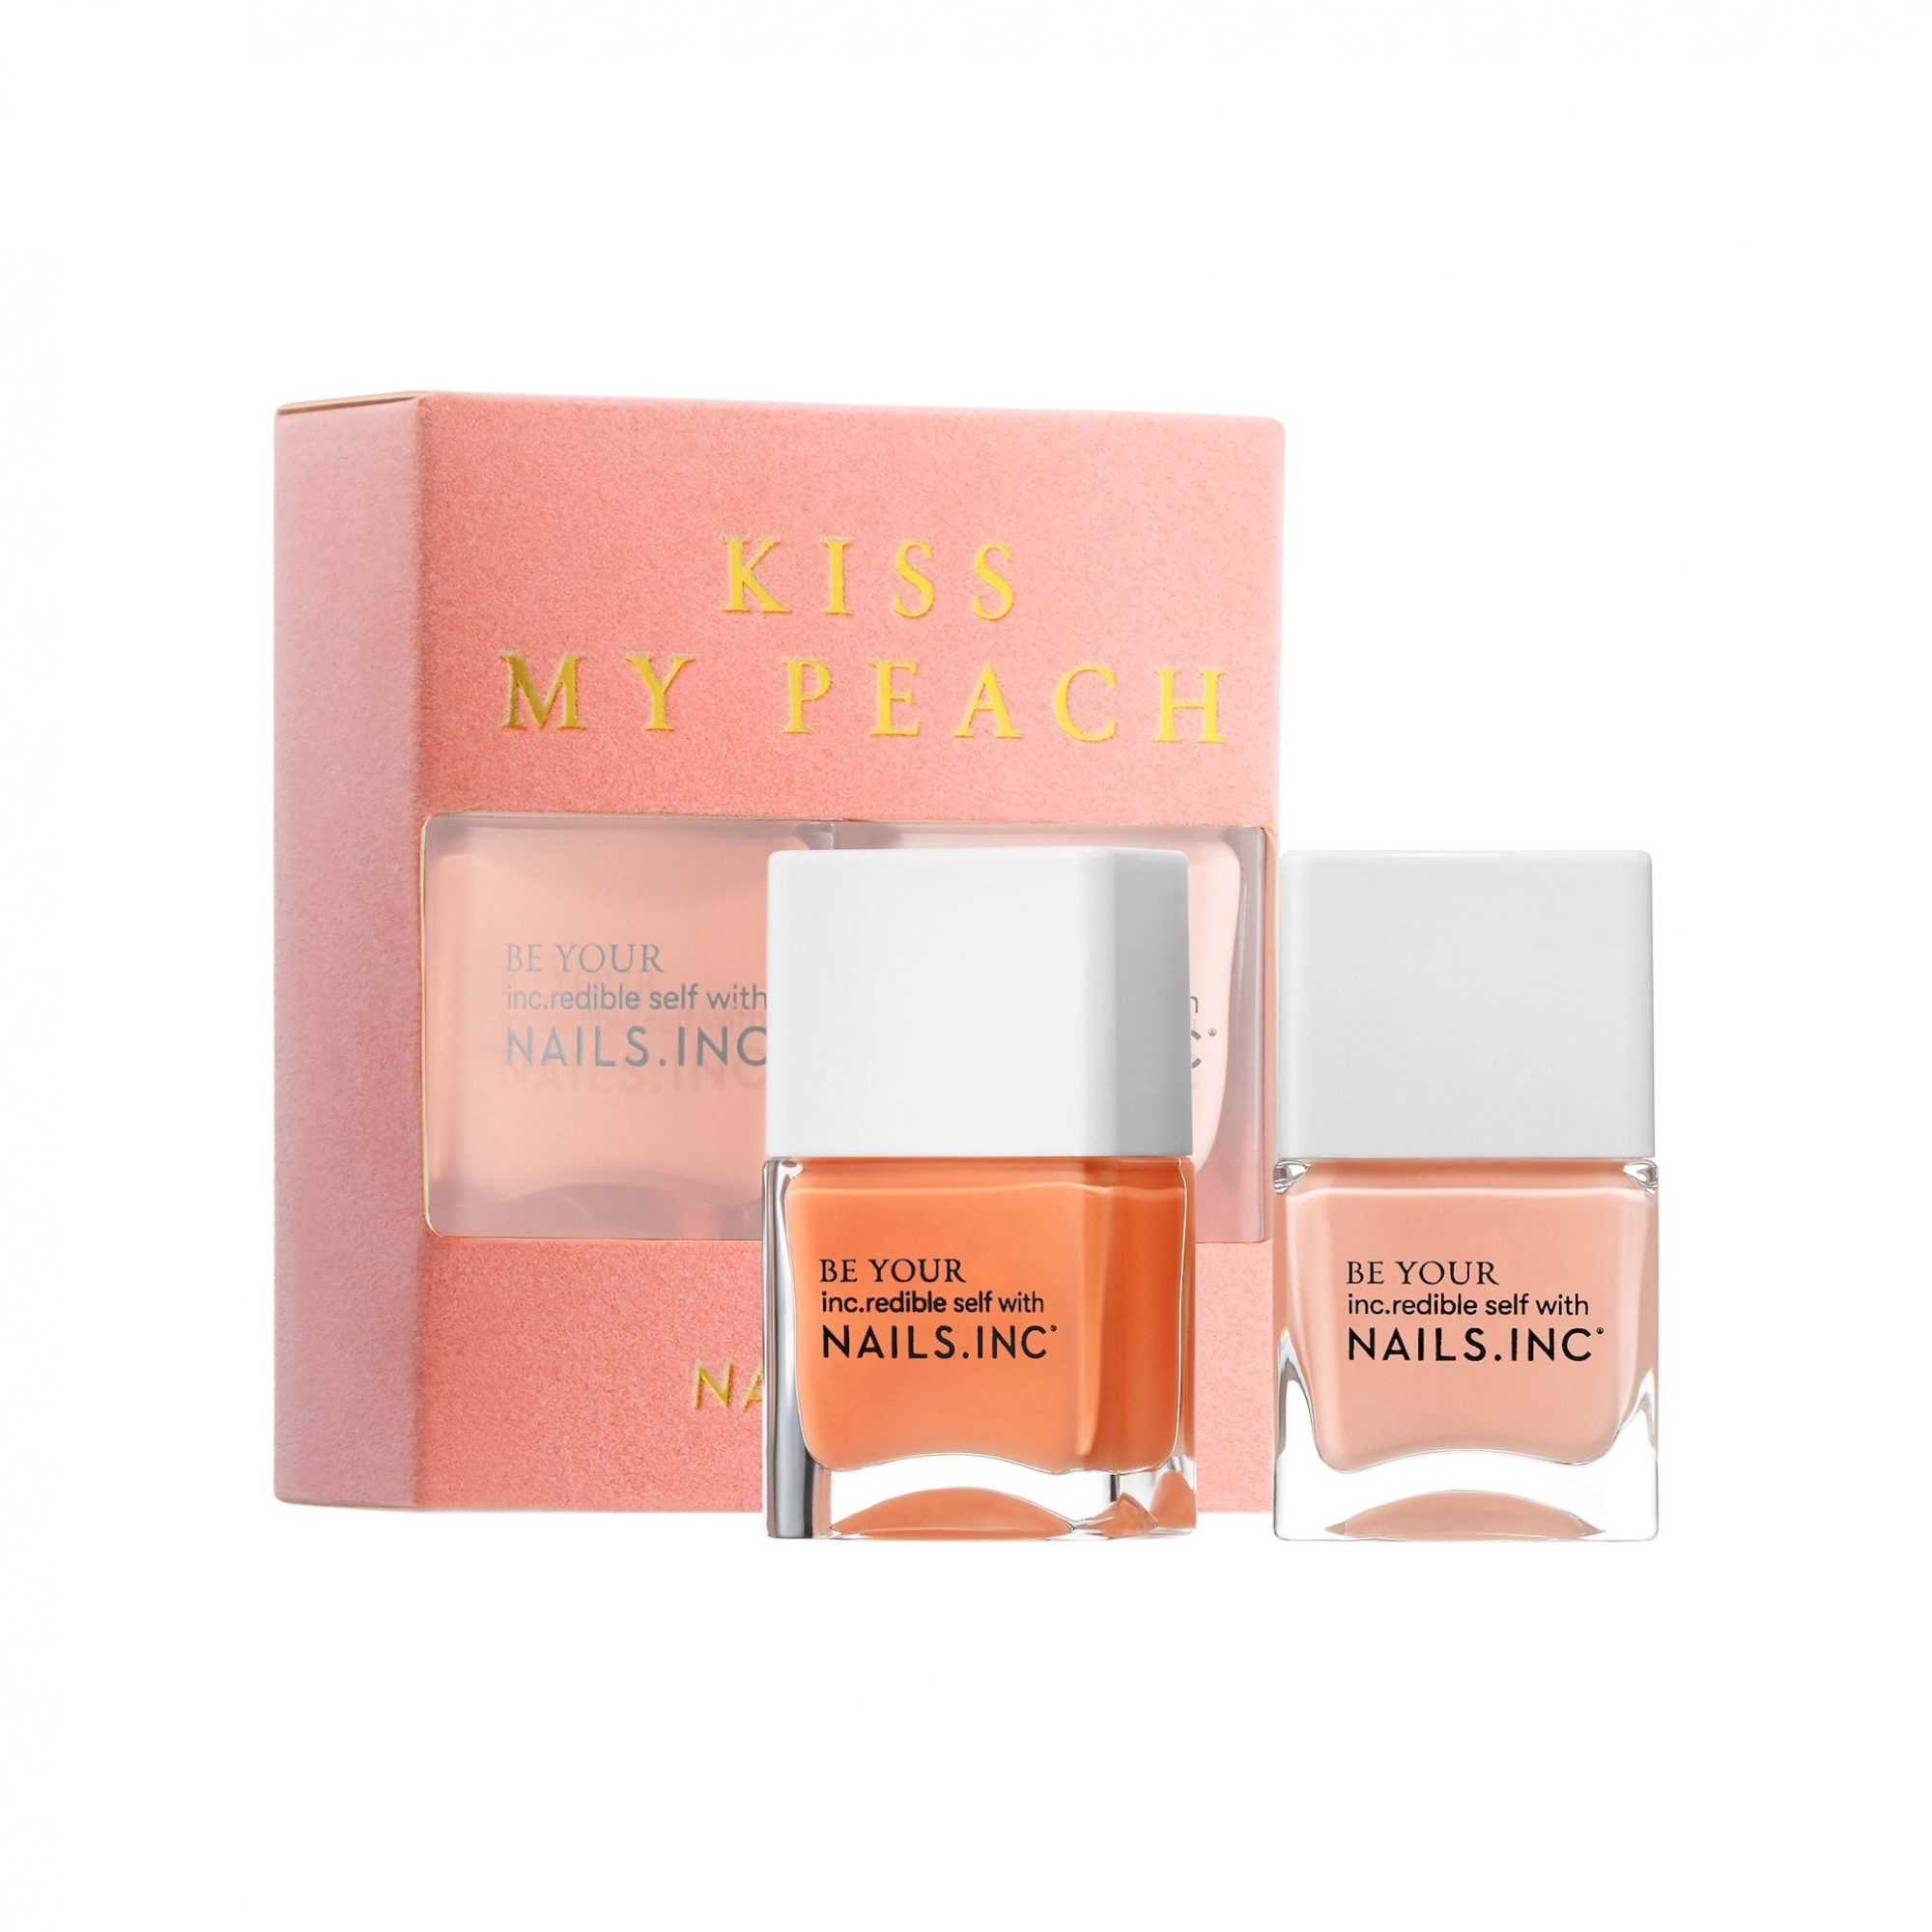 Nails Inc Kiss My Peach Duo Nail Set